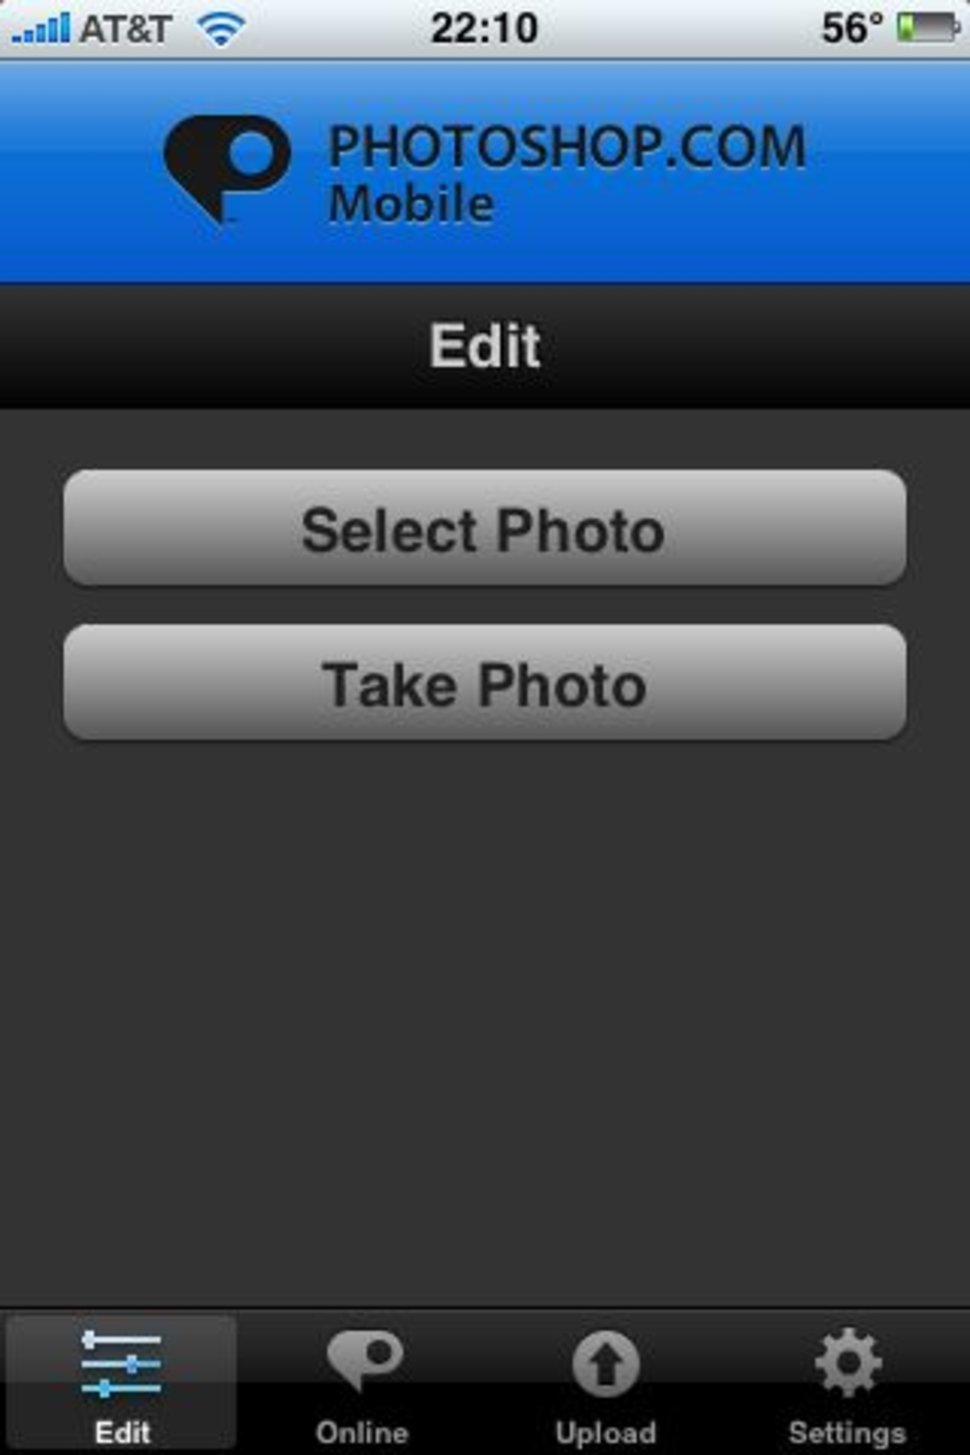 adobe photoshop com mobile for iphone review image 1